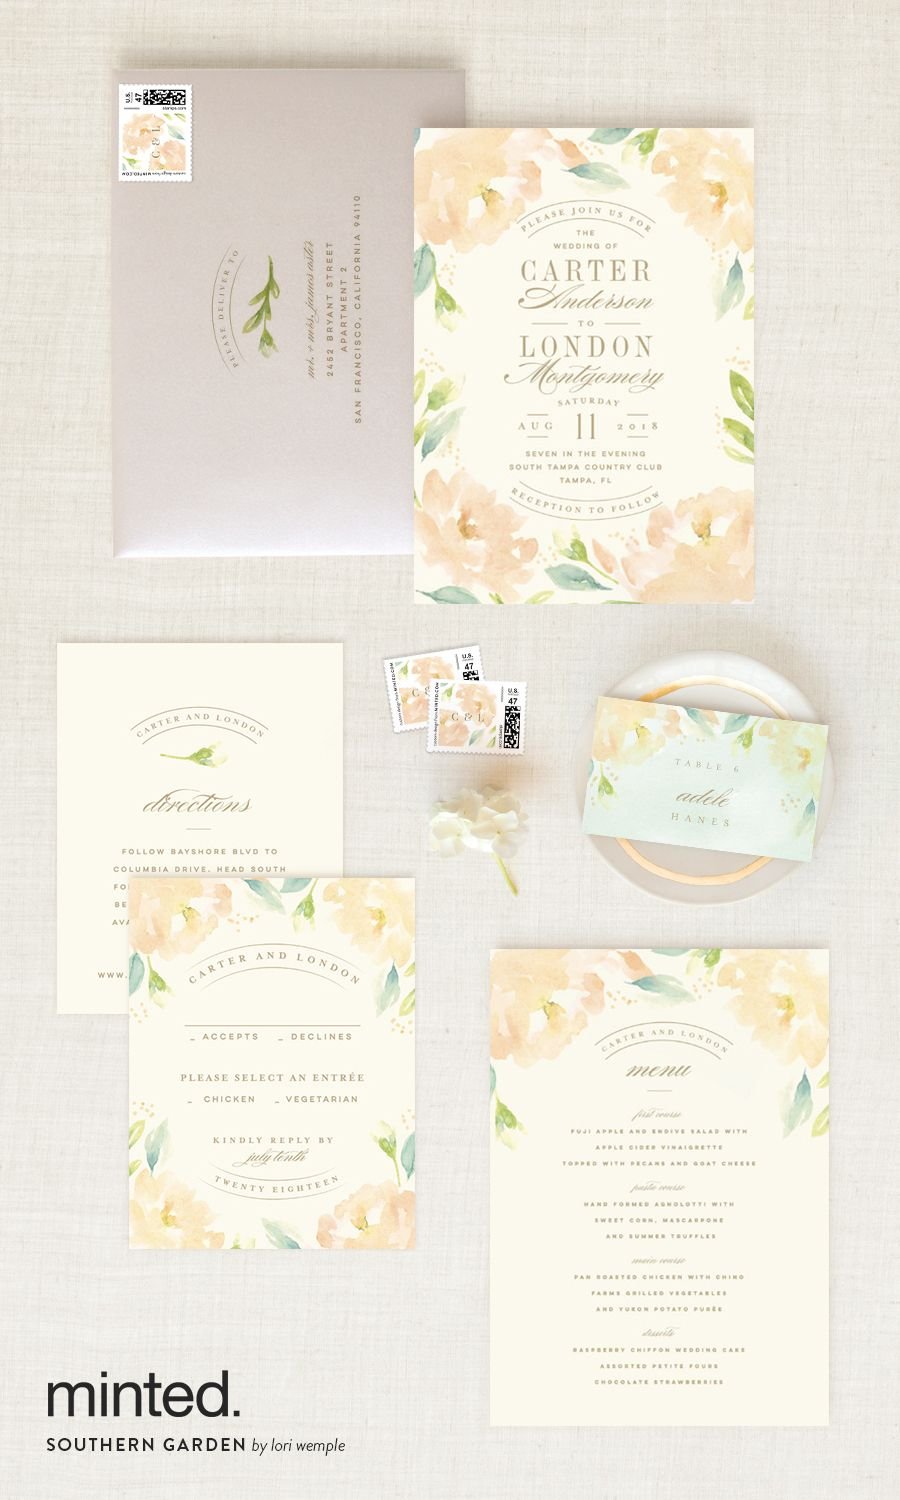 A Southern Garden Wedding Invitation Stationary Design Http Www Minted C Affordable Wedding Invitations Cheap Wedding Invitations Spring Wedding Invitations